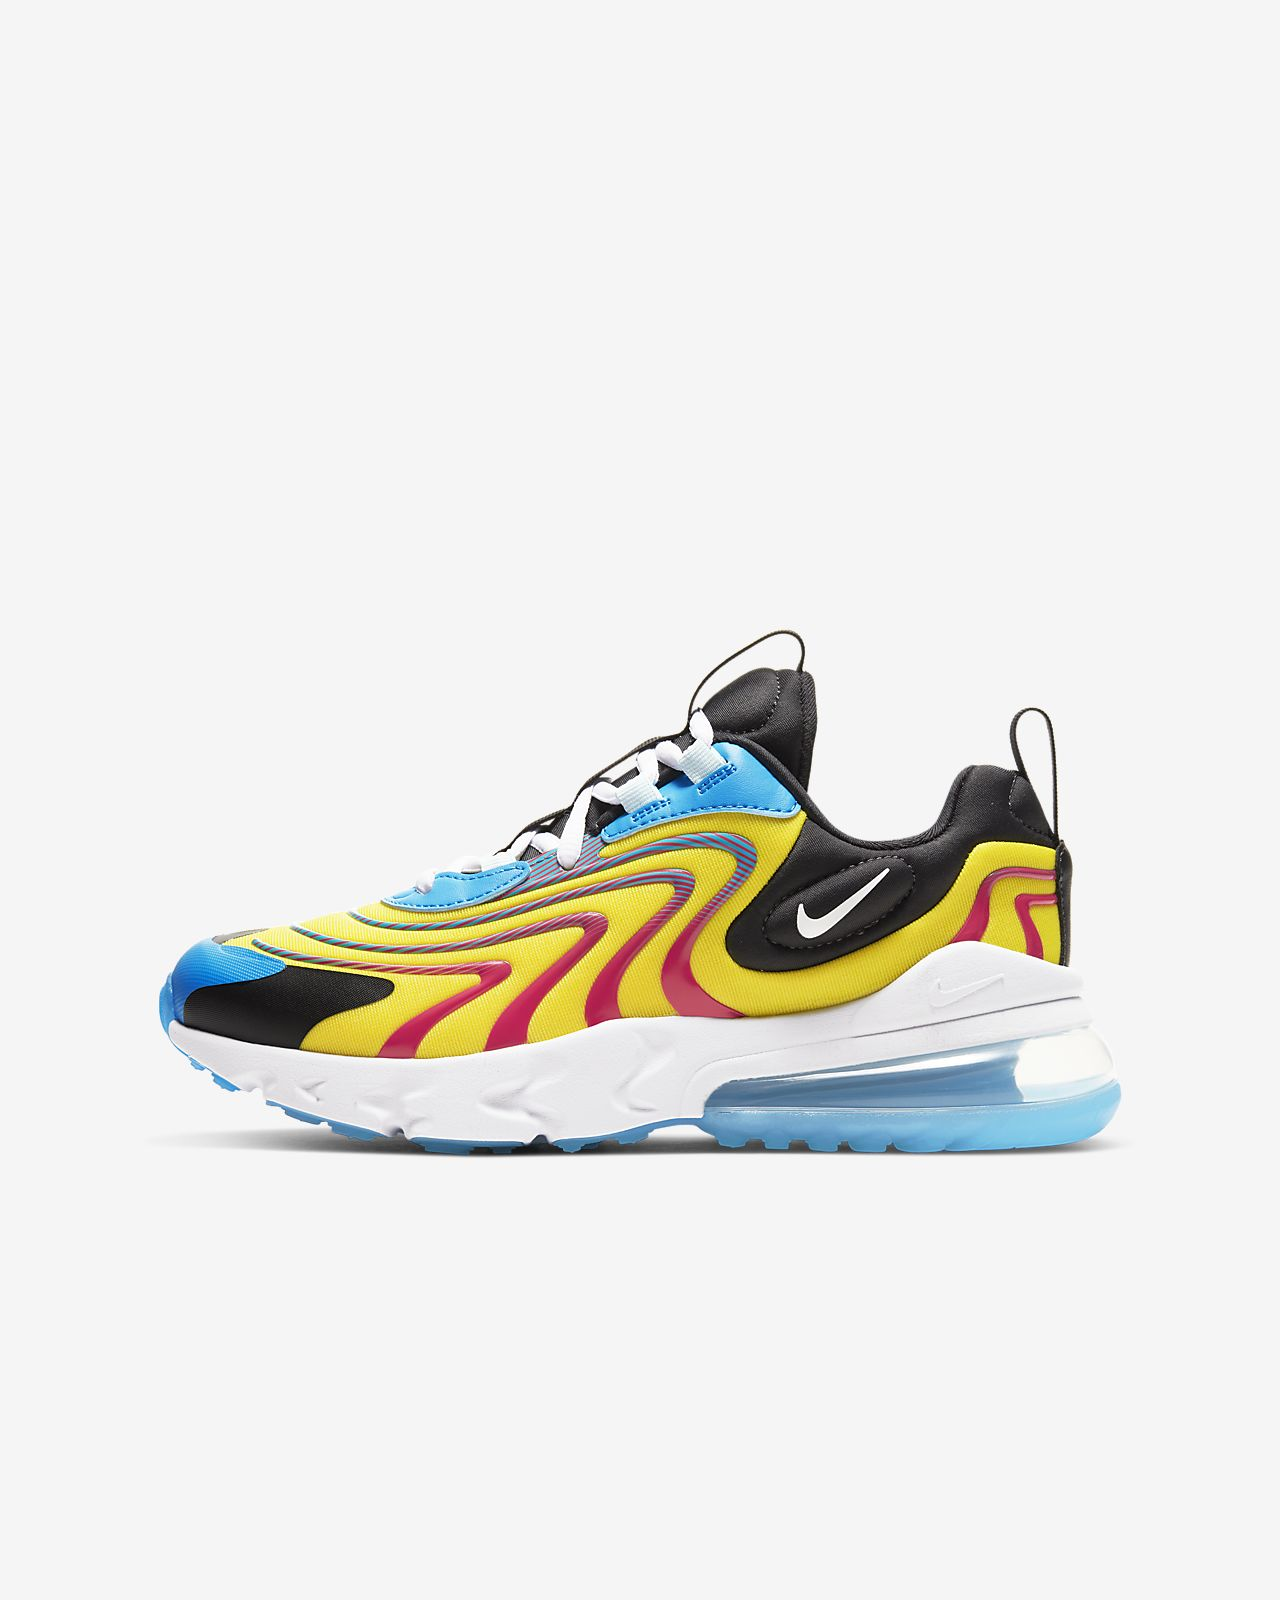 Nike Air Max 270 React ENG Big Kids</p>